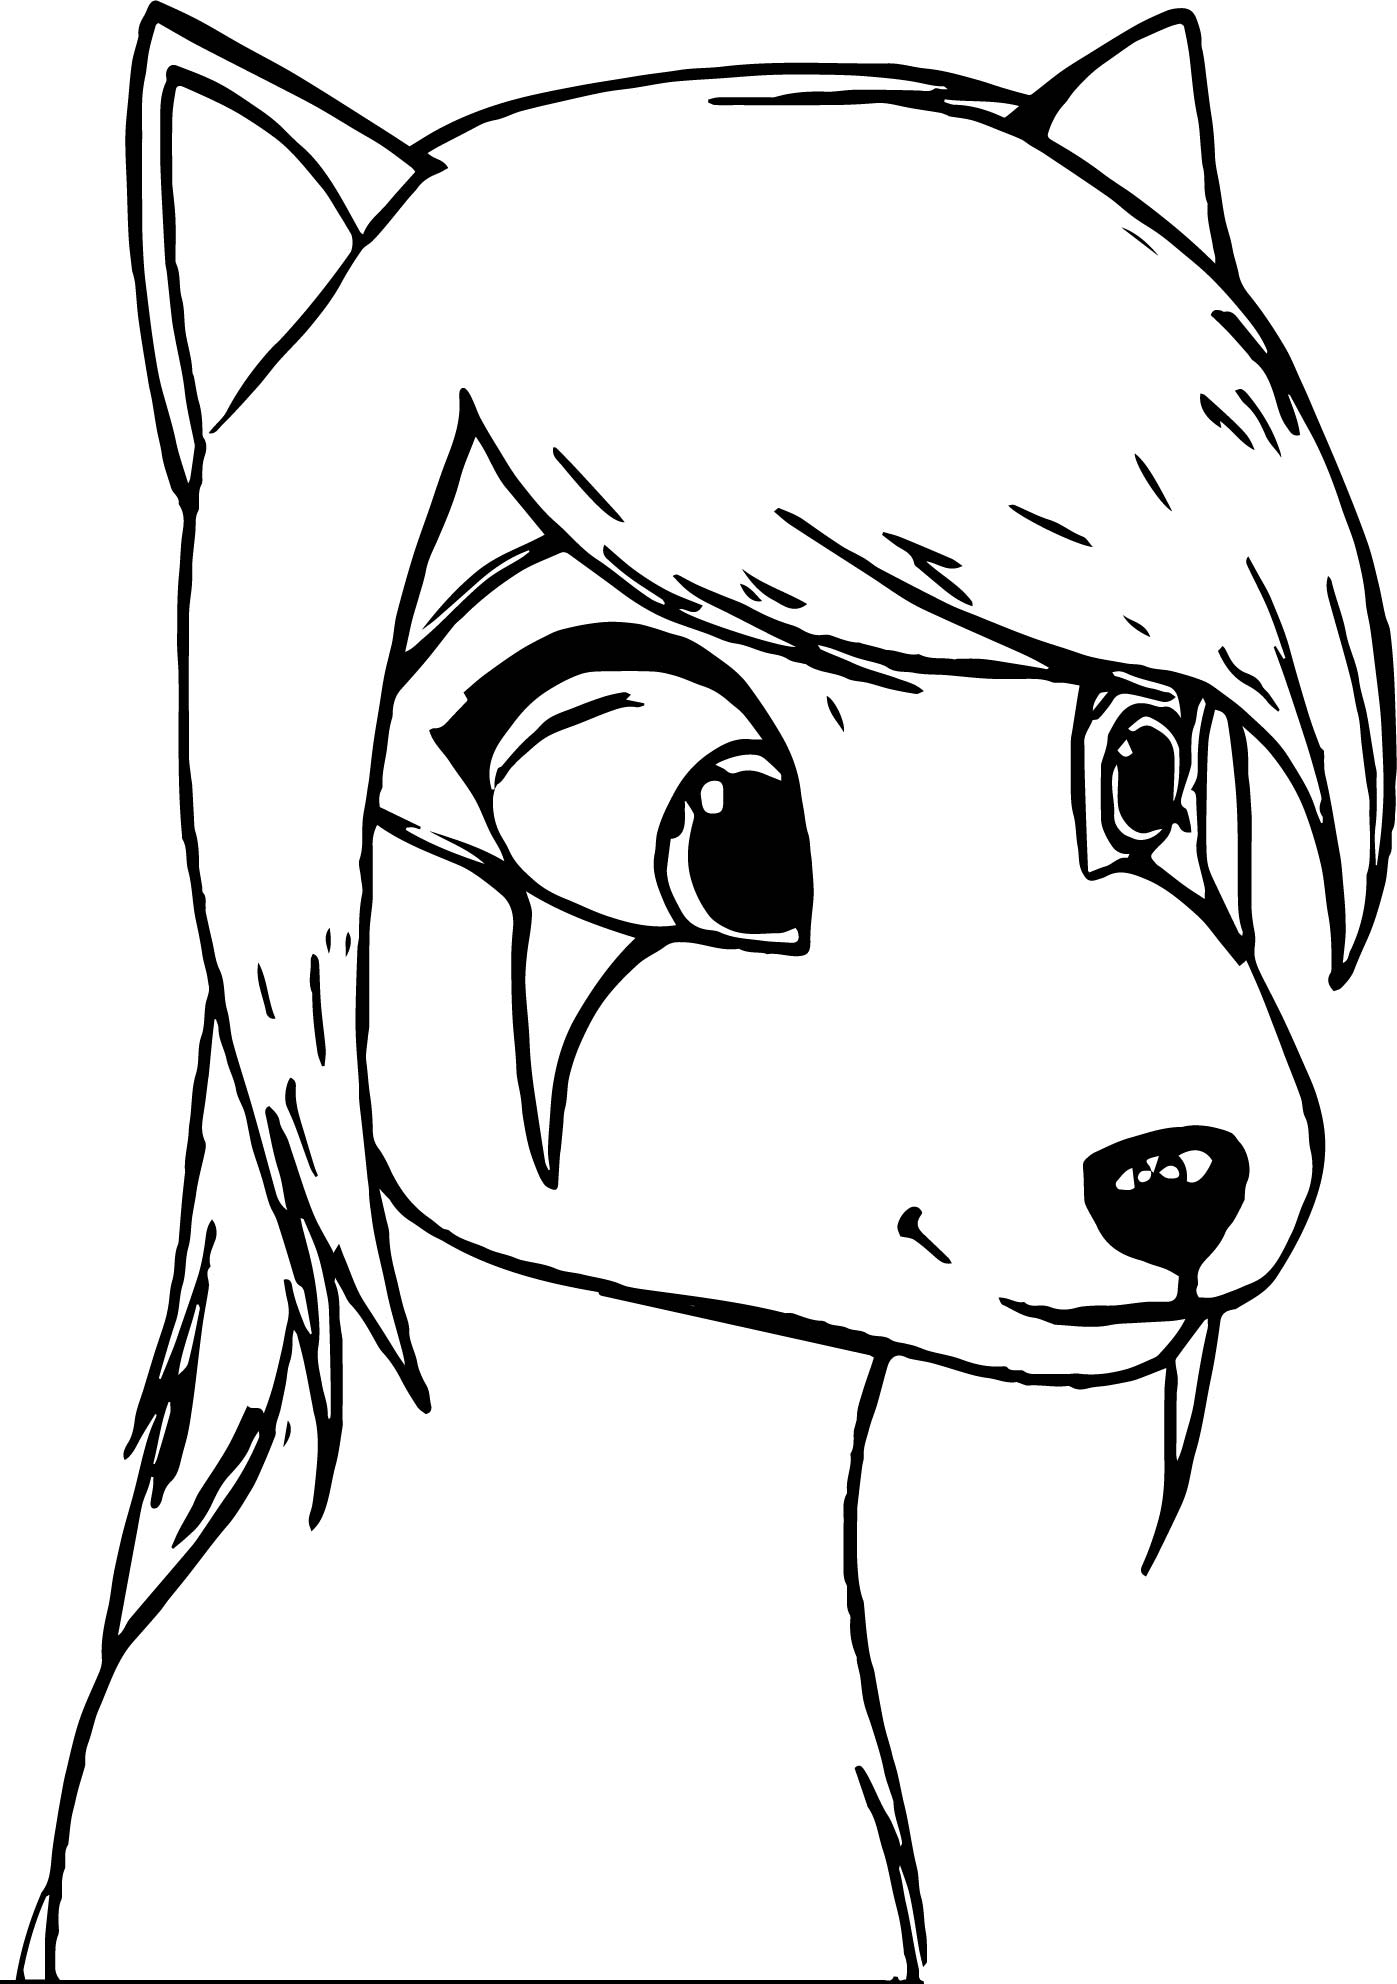 Alpha And Omega Oc Ellie Coloring Page